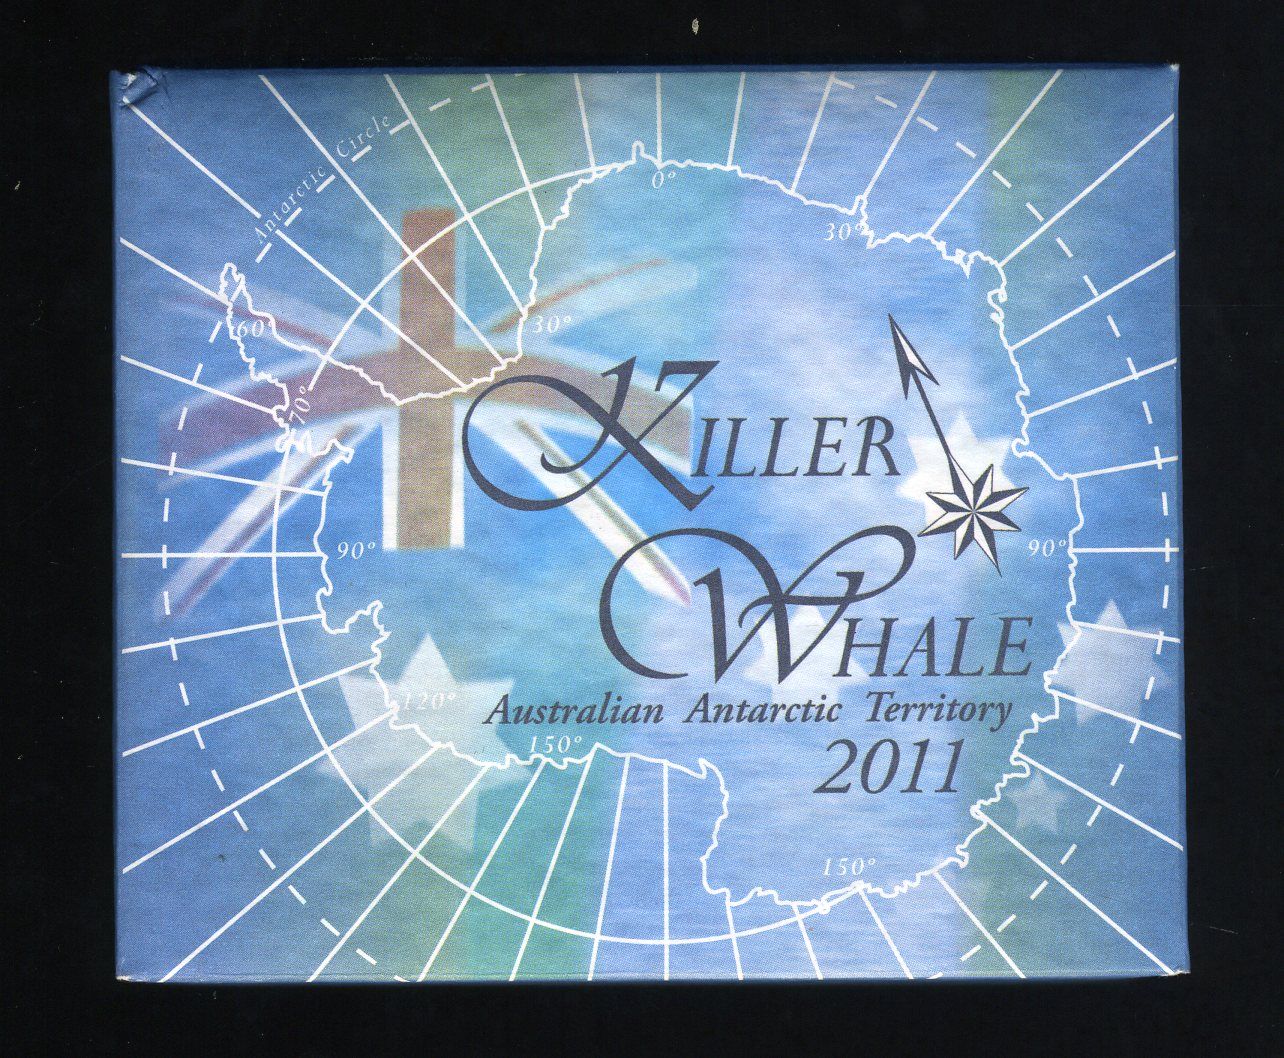 Thumbnail for 2011 Australian Antarctic Territory 1oz Silver Proof Coin - Killer Whale